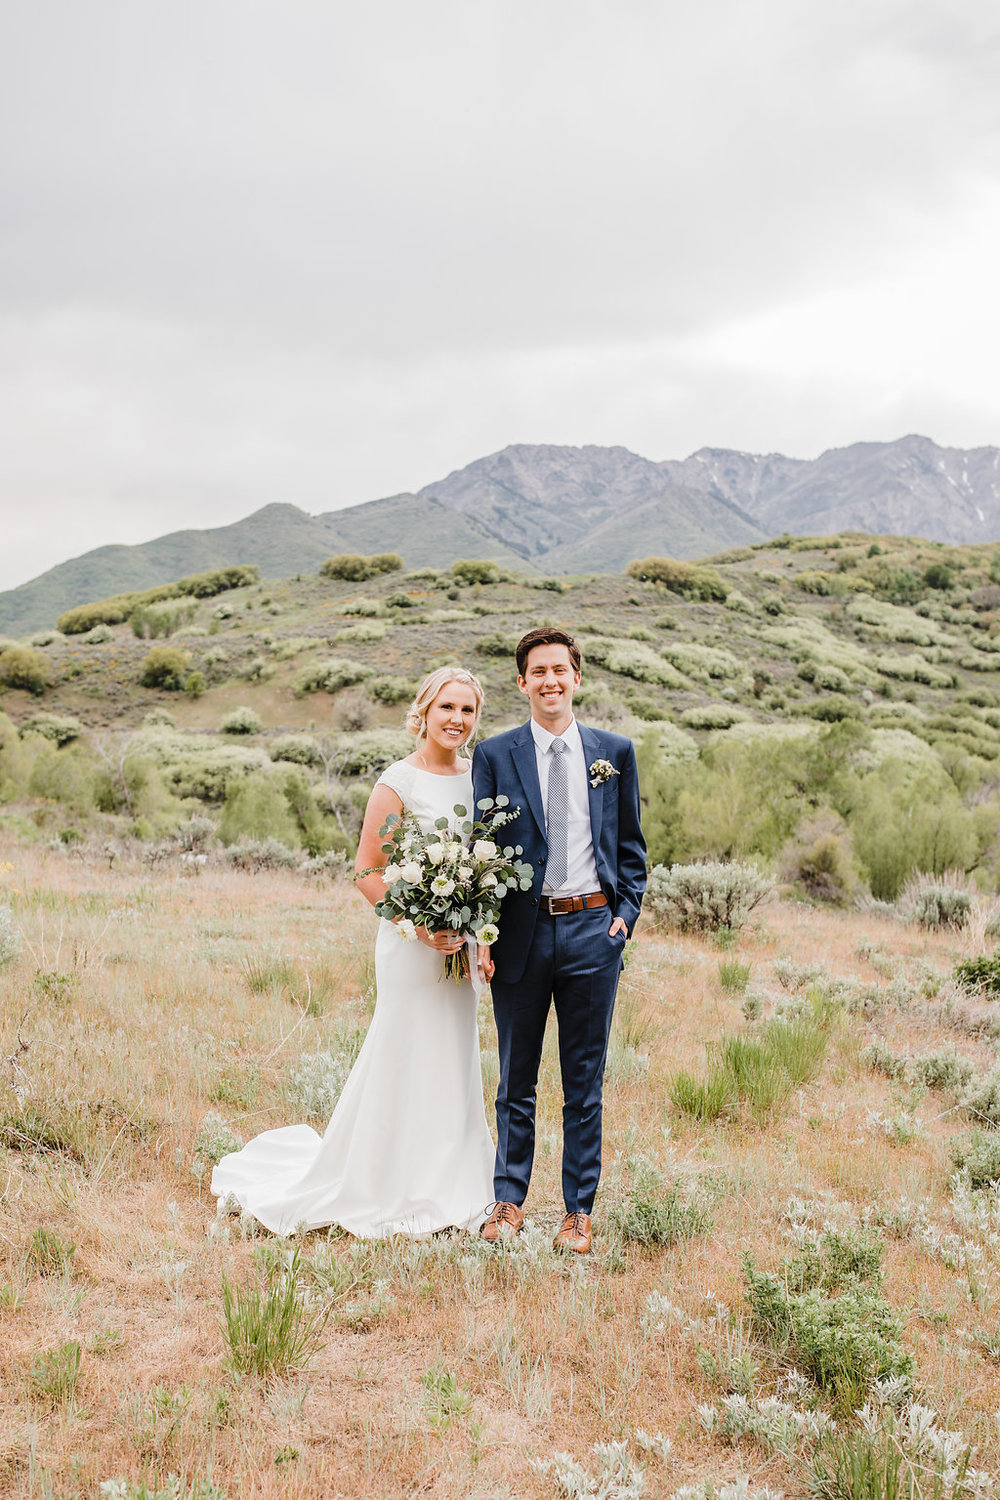 professional wedding photography formals photo shoot calli richards cache valley wedding photographer